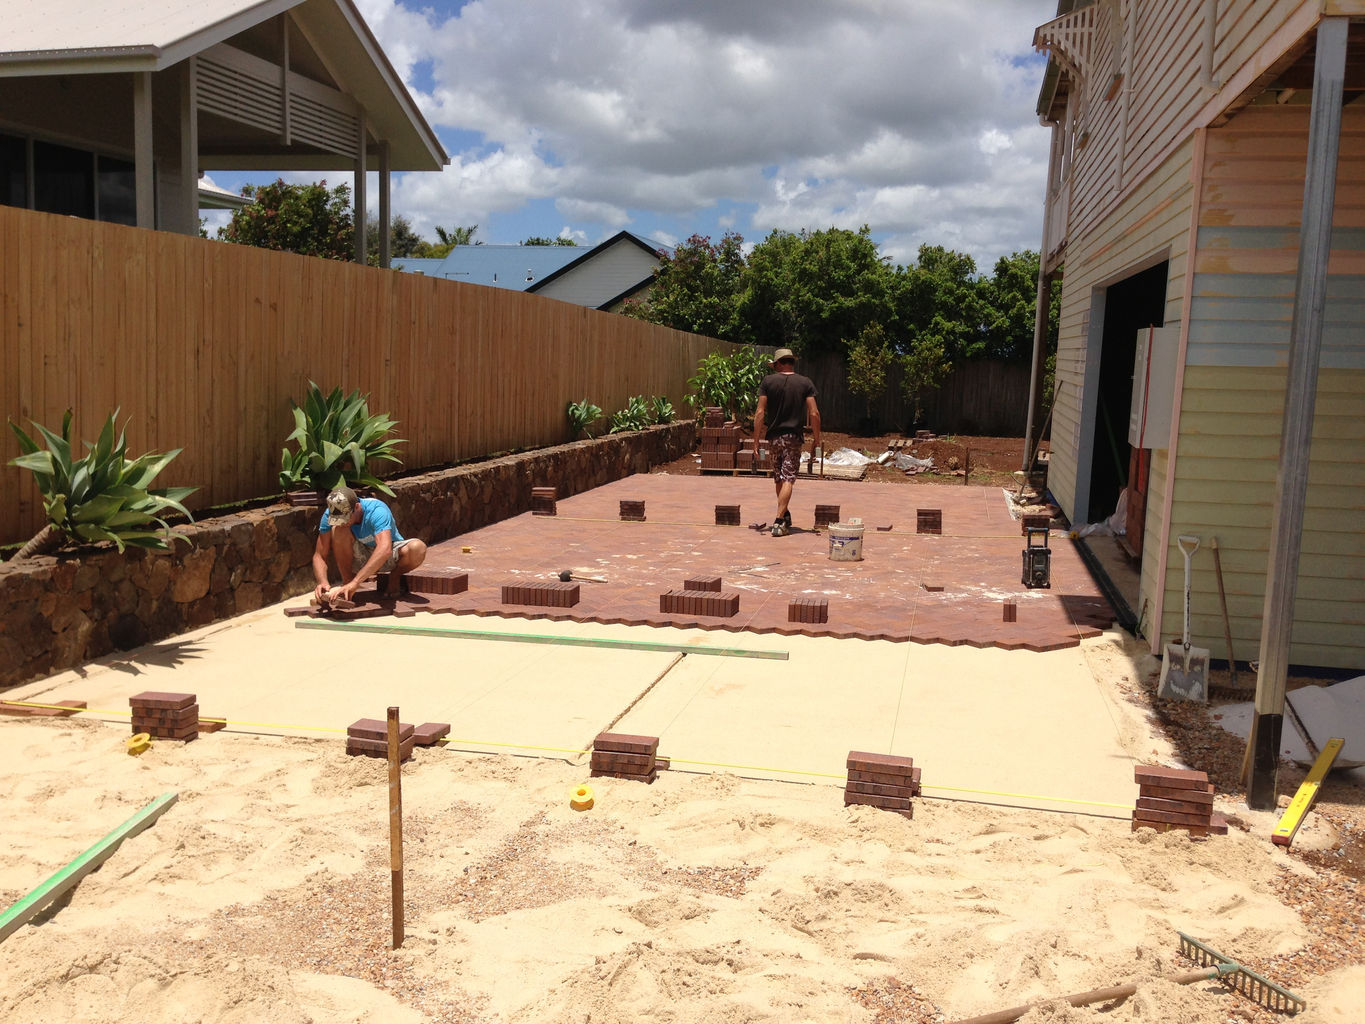 A rock wall is used as the retaining wall and a paved driveway is added.